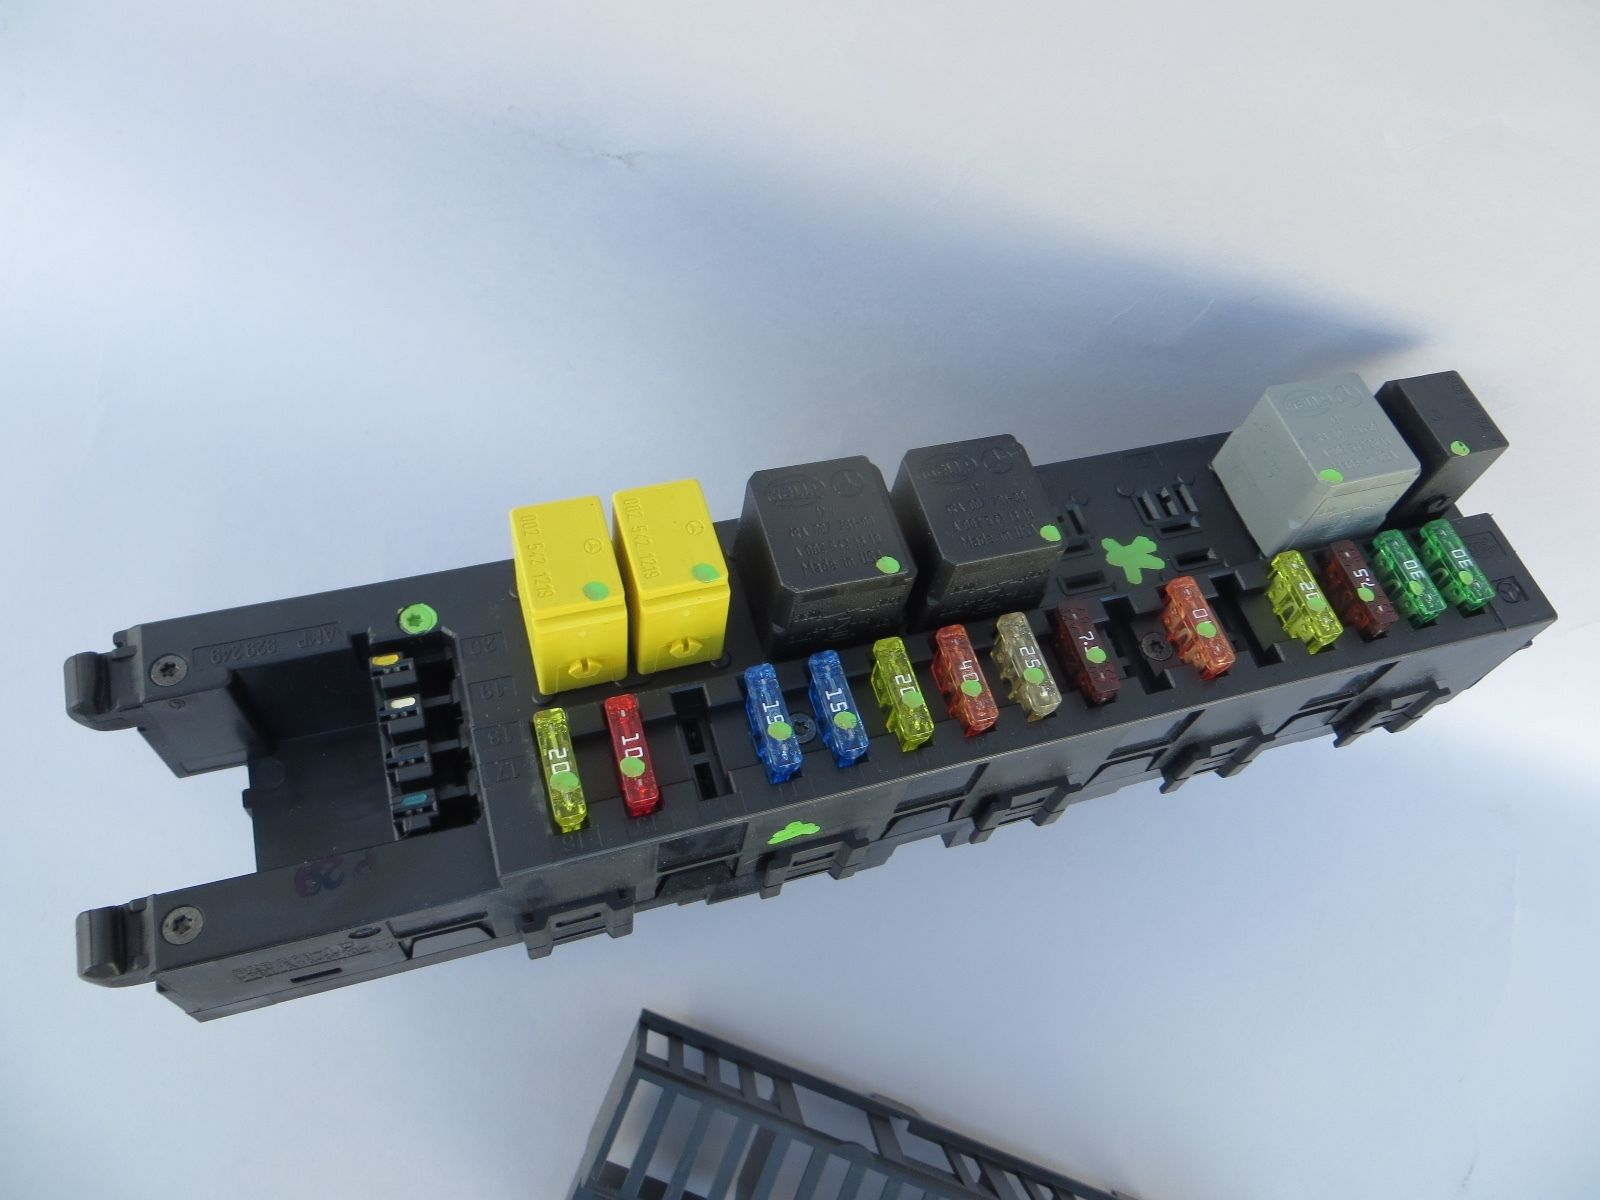 hight resolution of 2007 mercedes cls550 e350 trunk fuse box rear sam module 2115455301 e550 cls63 2115455301